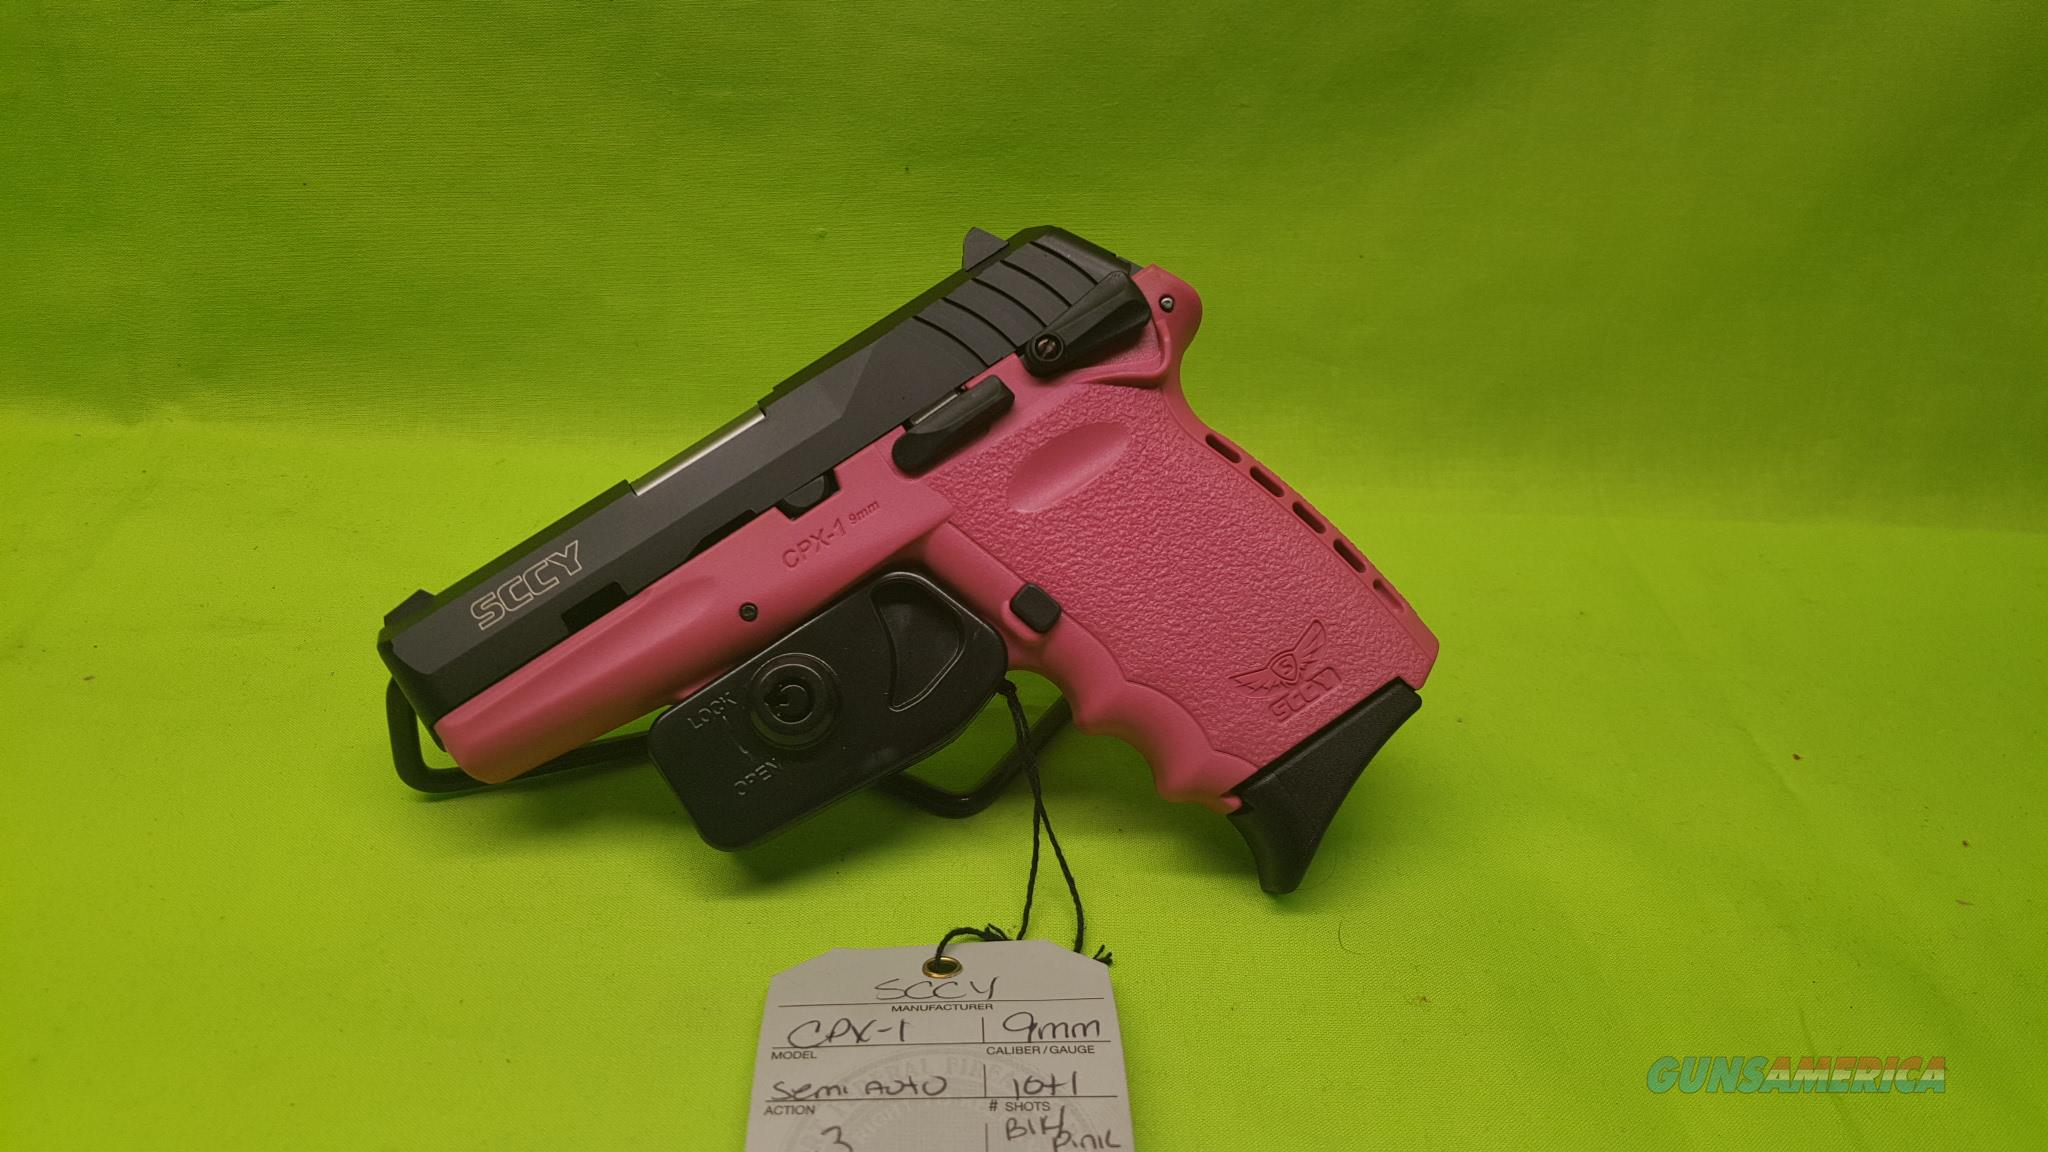 SCCY CPX-1 CPX 1 CPX1 9 9MM 10RD BLK/ PINK 2MAGS  Guns > Pistols > SCCY Pistols > CPX1